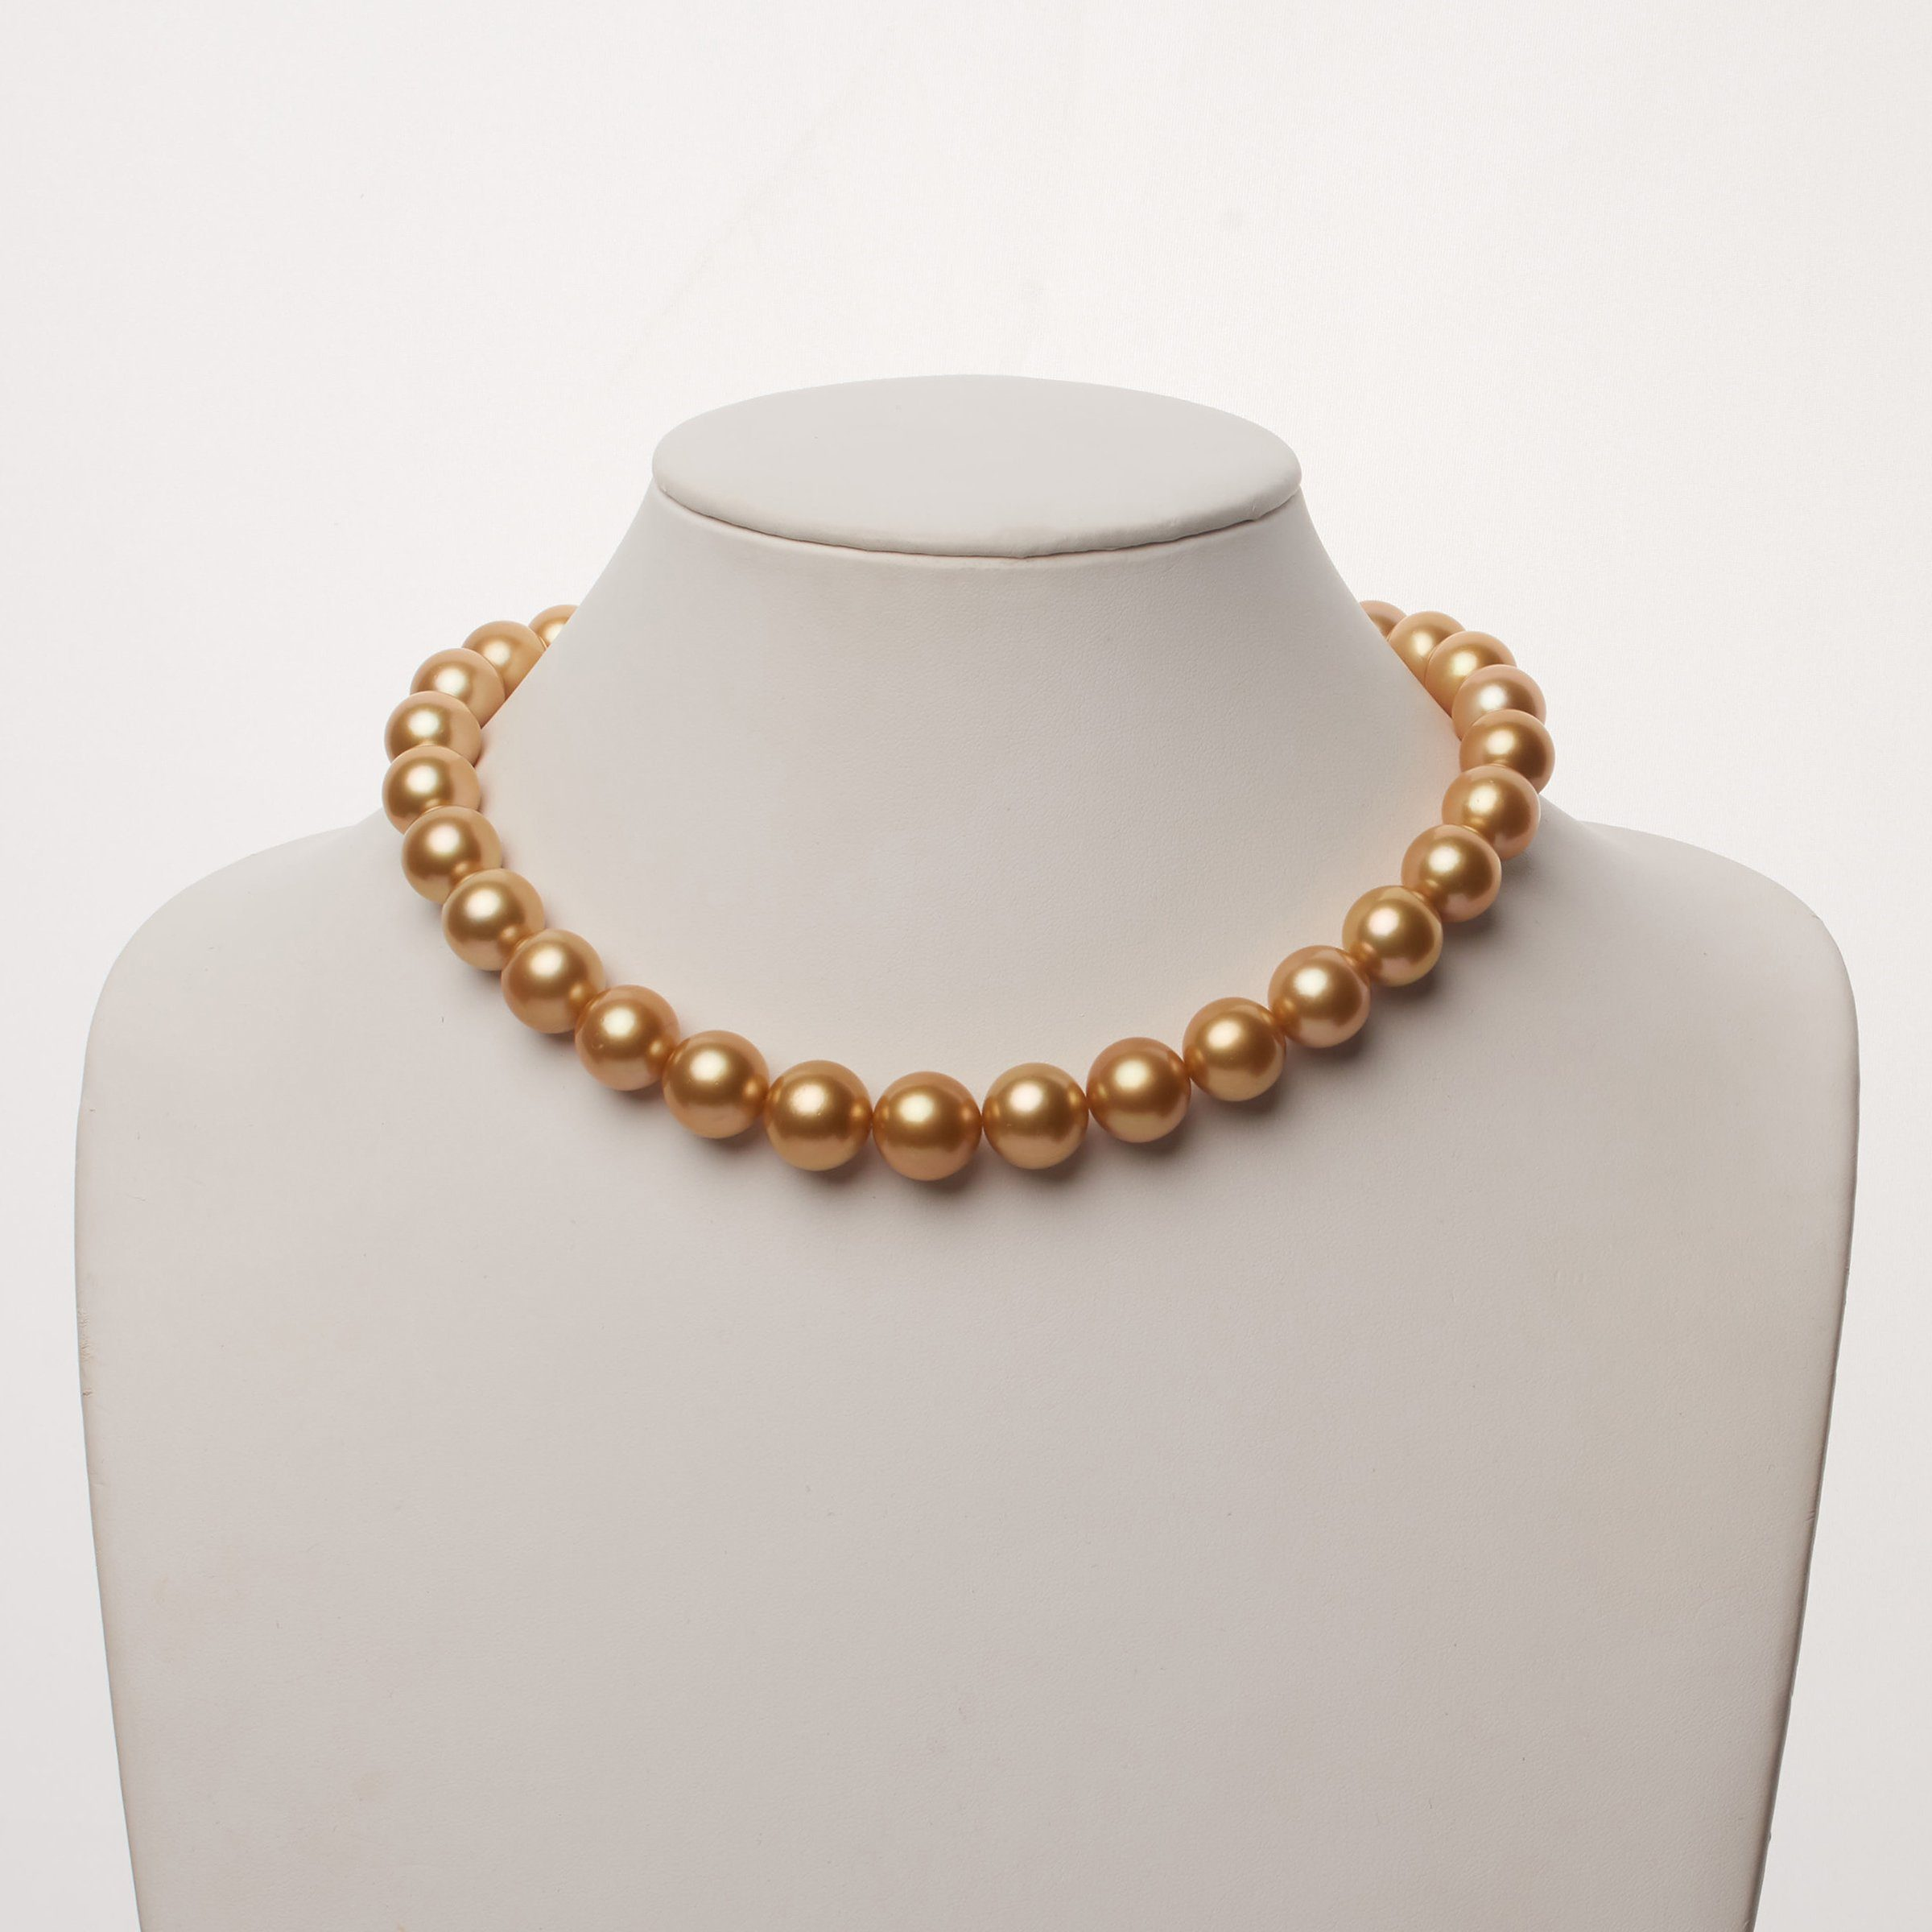 13.0-14.5 mm AA+/AAA Golden South Sea Round Pearl Necklace